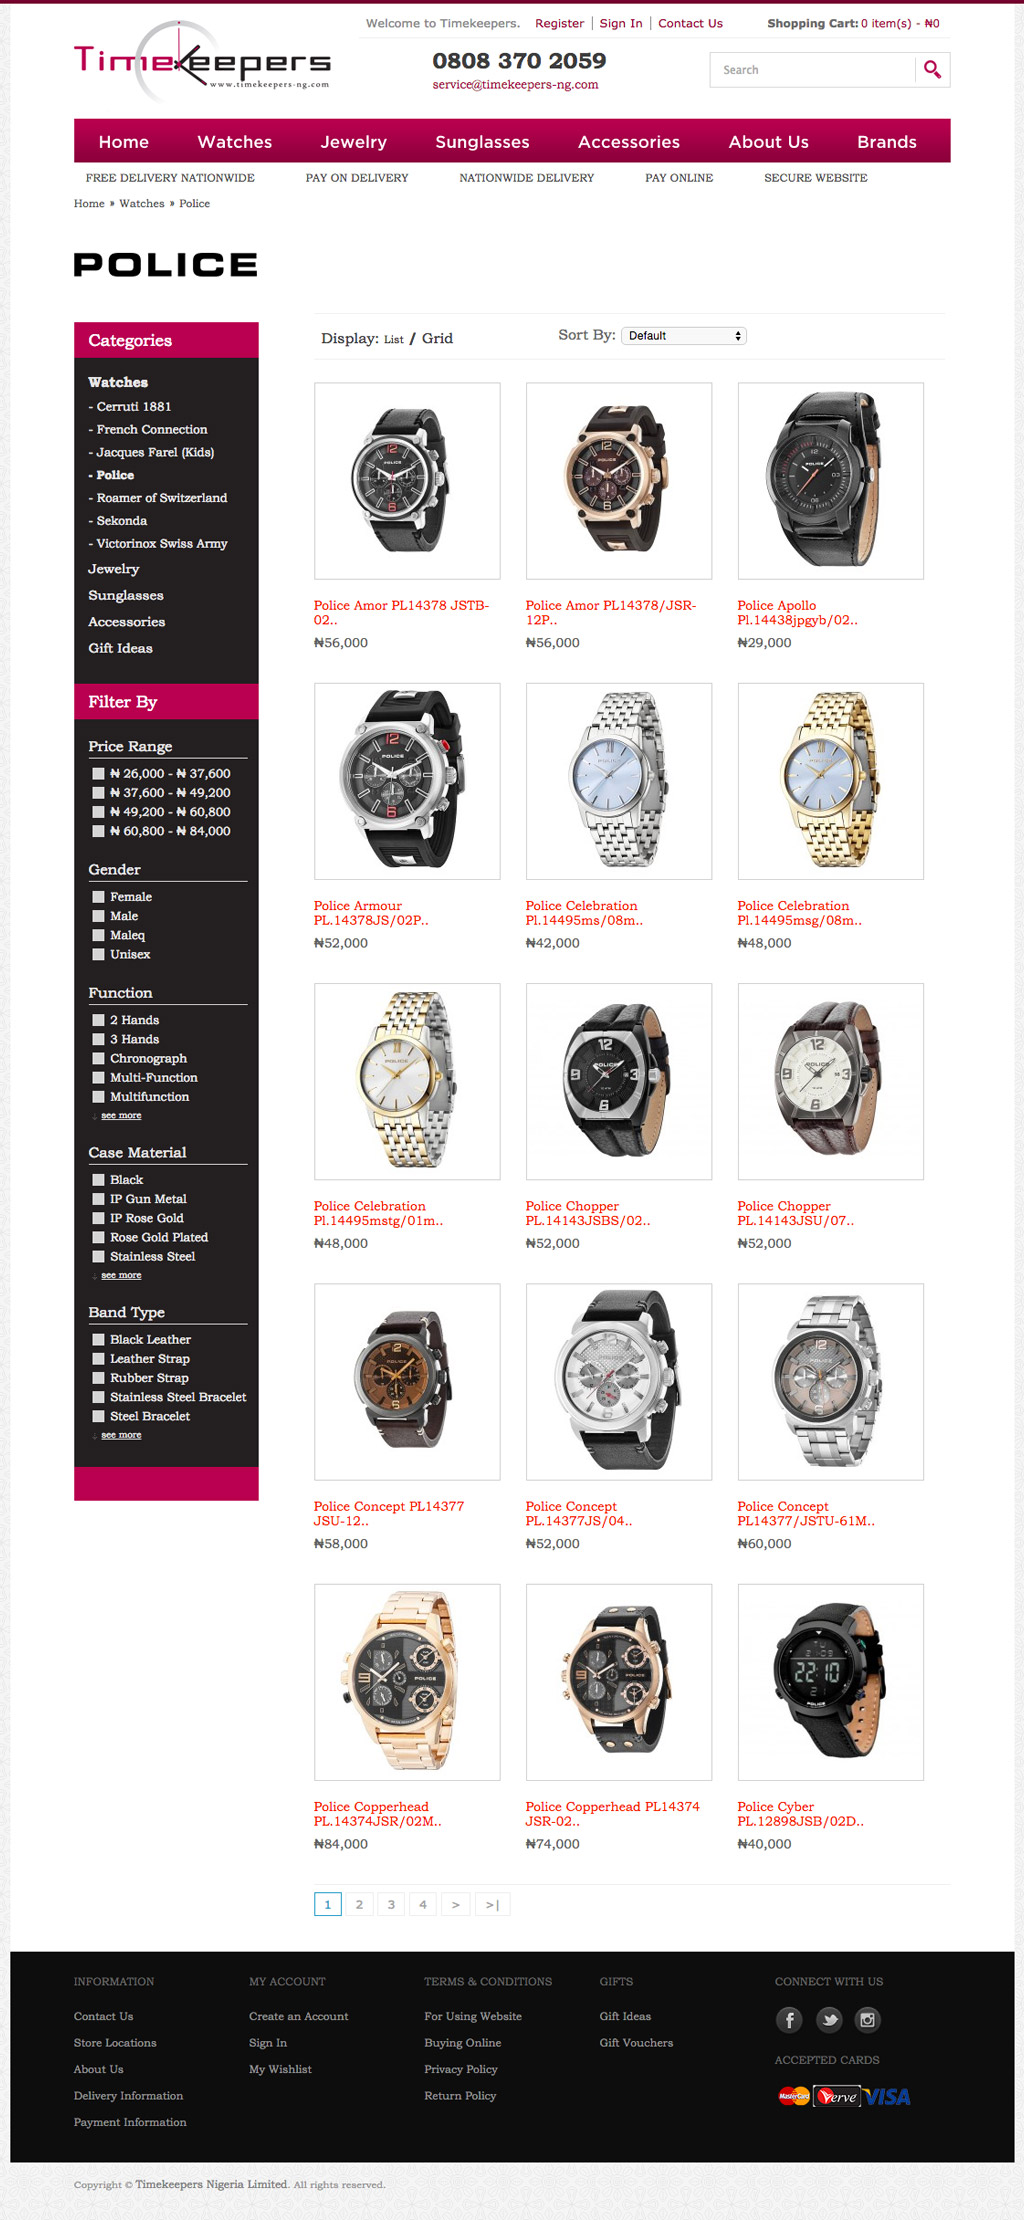 timekeepers-ecommerce-website-category-page-development